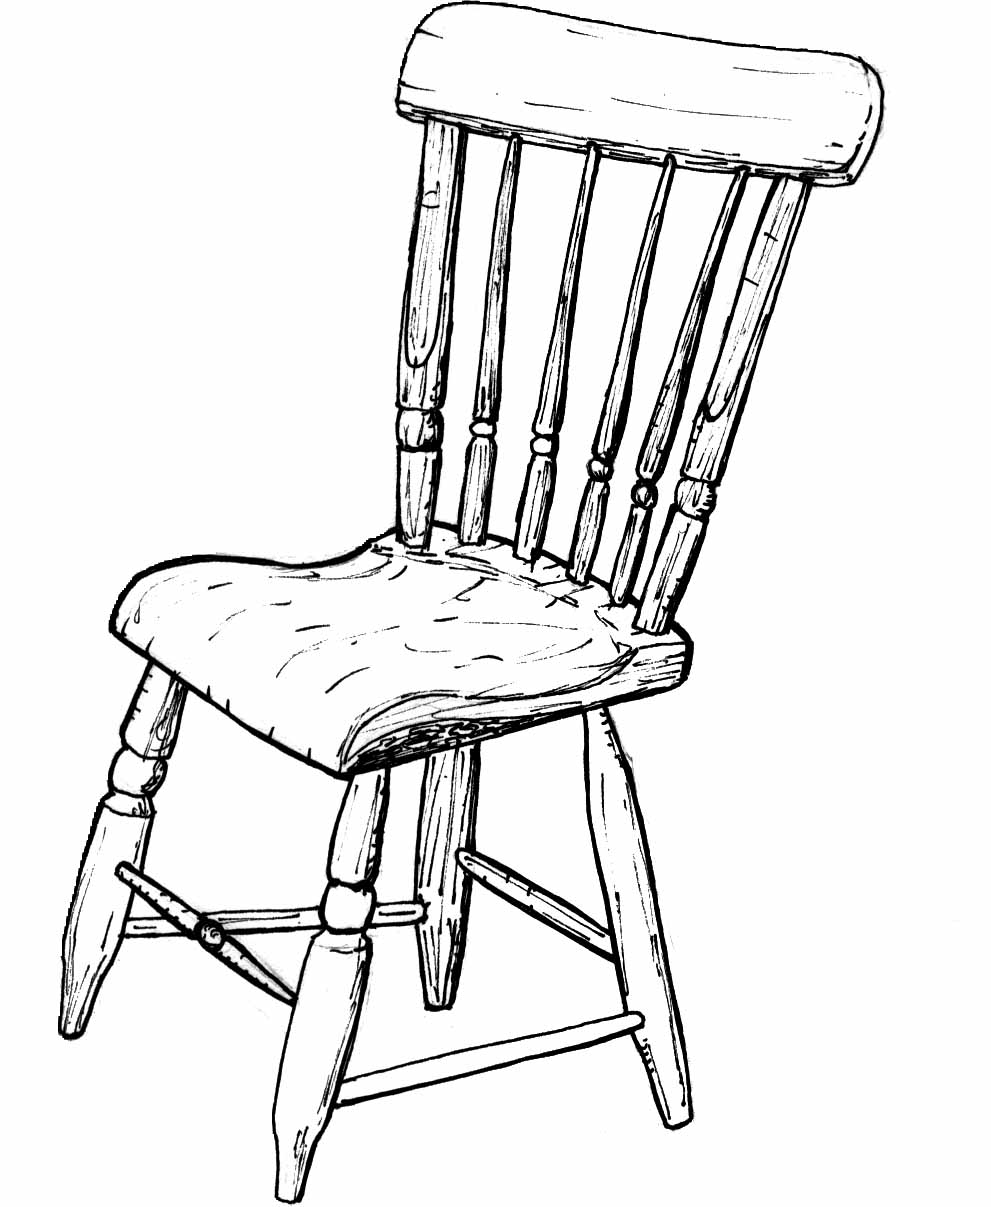 drawing chair traditional chair illustrations royalty free vector chair drawing